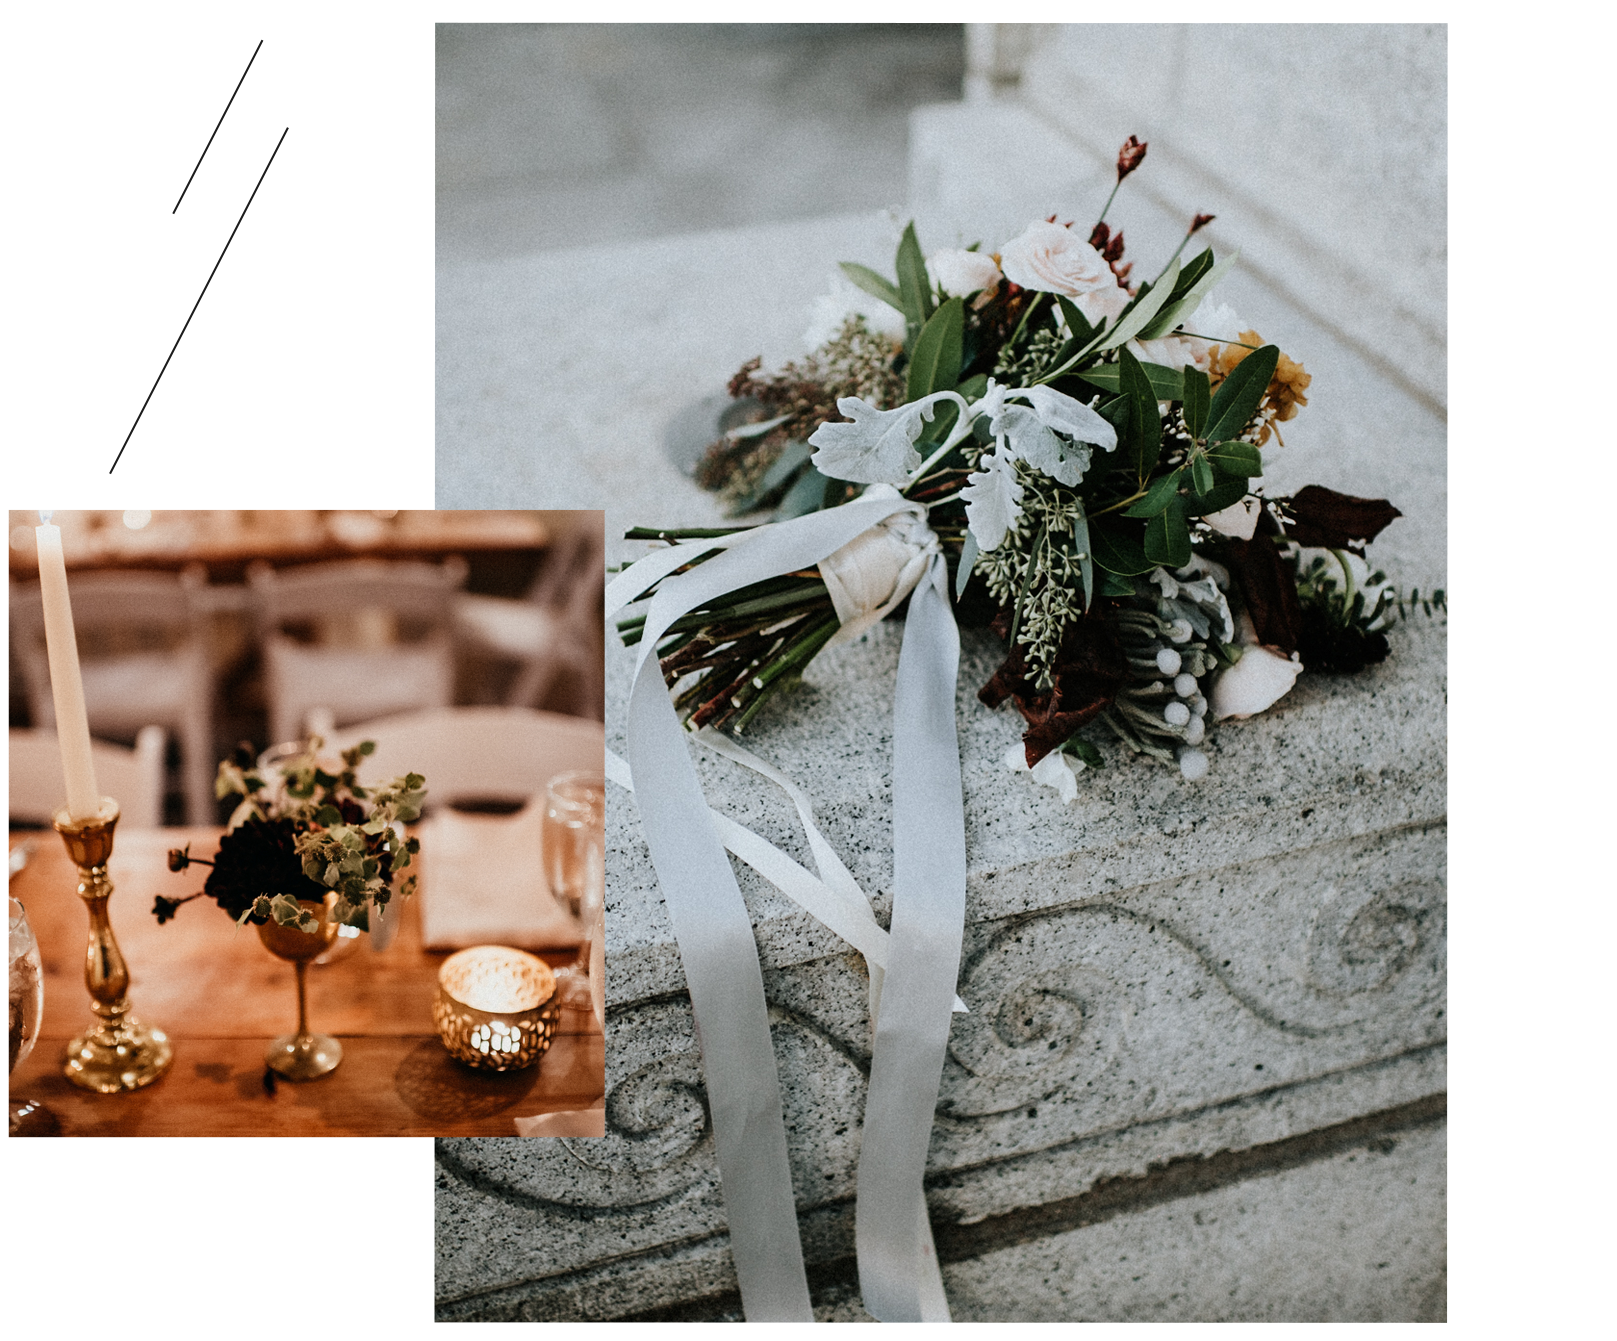 vendors we love - Choosing vendors for your big day can be a daunting process! We're here to help with some suggestions on local vendors that we've had great experiences with. Feel free to browse and reach out to us with any questions you may have.